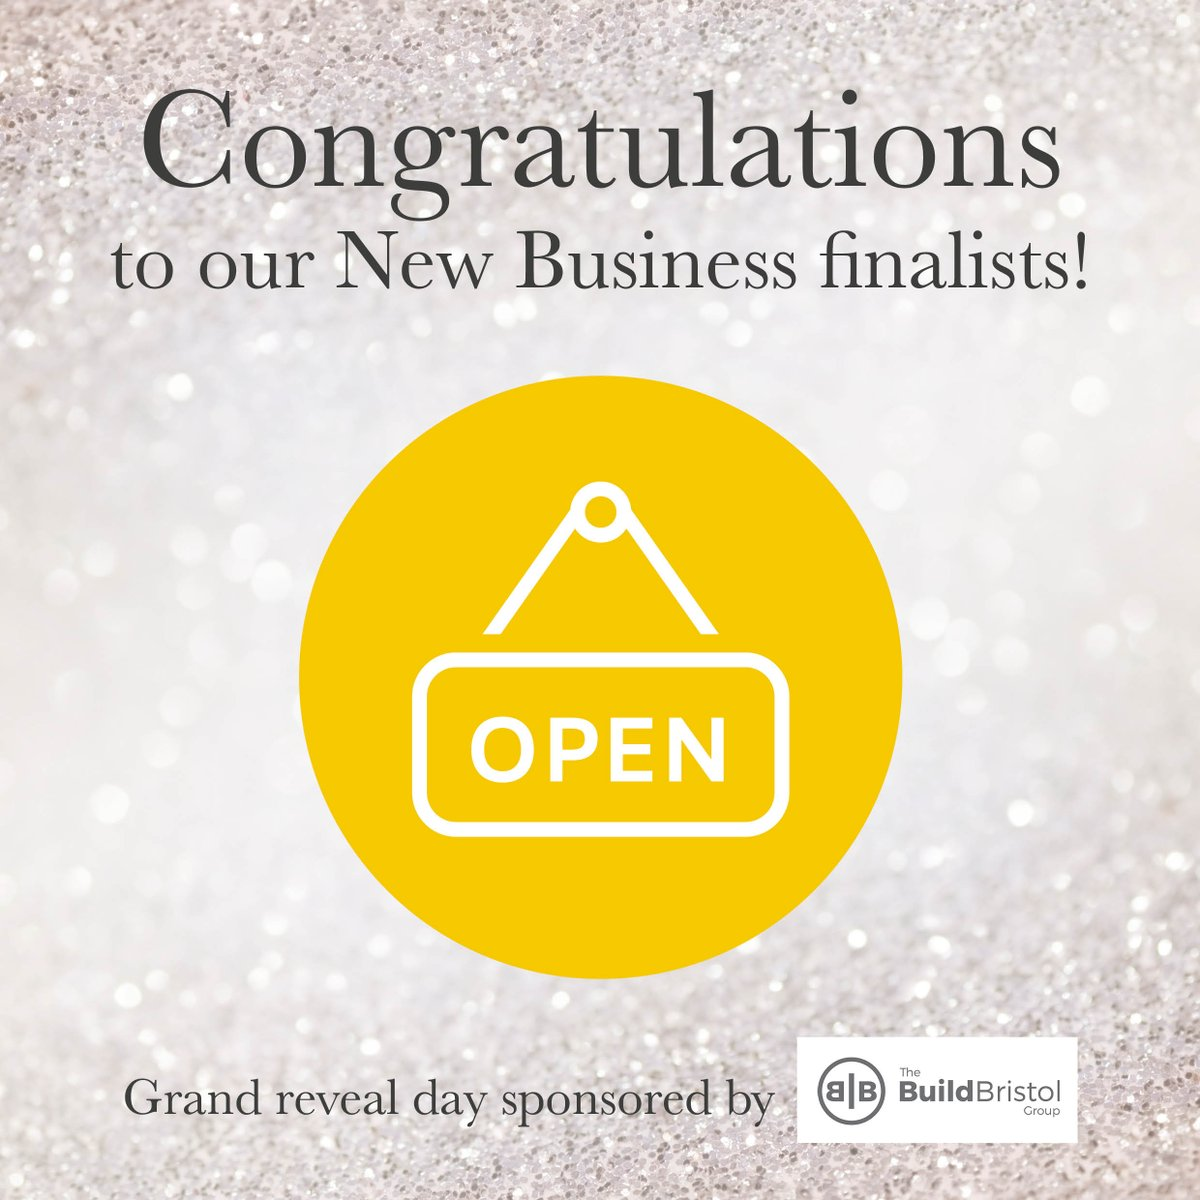 Wahoo 👏👏we're super excited to be a finalist in the new business category at the @BristolLifeAwds. Amazing news in our first year @CarlClifford17 @BenWhatley1 @Marc1Andrew #TeamCreative  Congrats to the other finalists - looking forward to celebrating with you on the night 💃